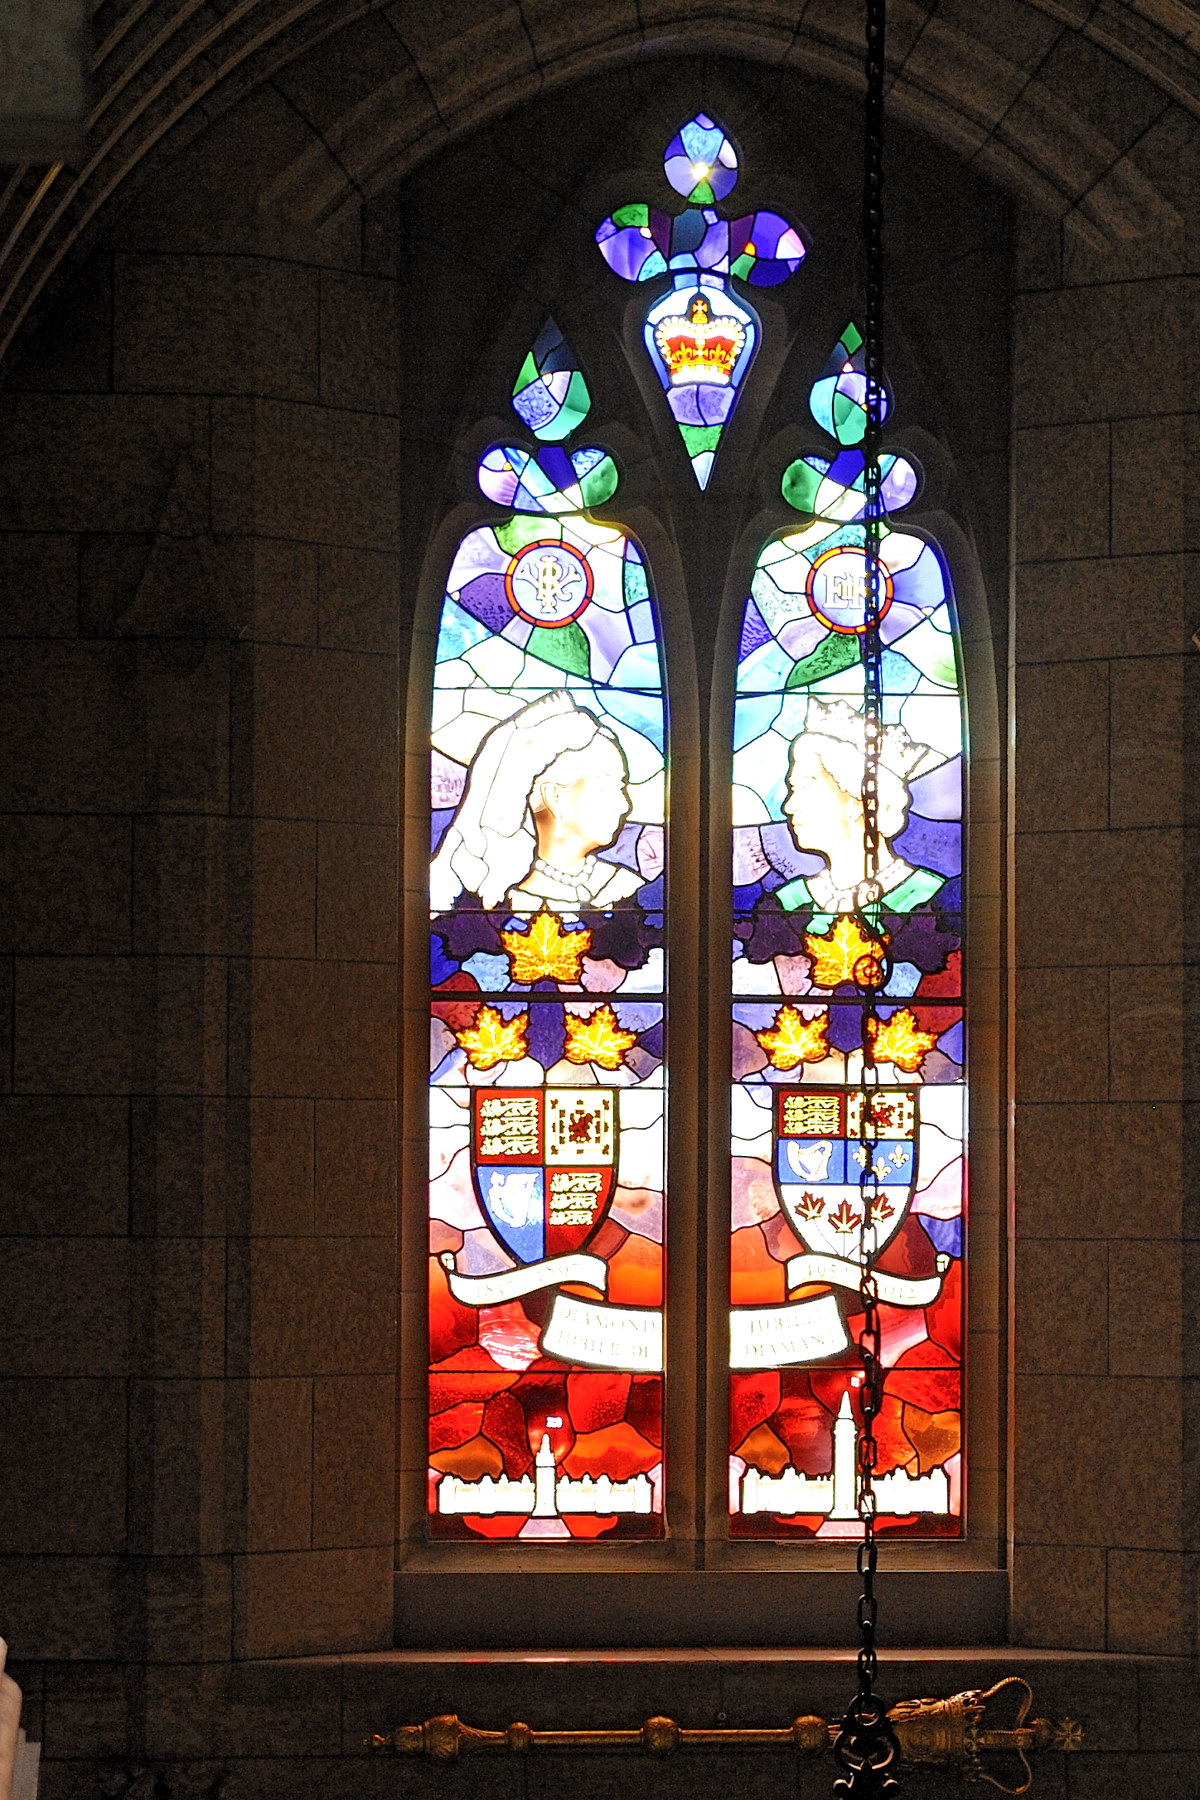 The Diamond Jubilee window was created to celebrate the 60th anniversary of Her Majesty Queen Elizabeth II's reign and to commemorate the Diamond Jubilee of Queen Victoria. It is located over the Senate entrance to the Parliament Buildings.